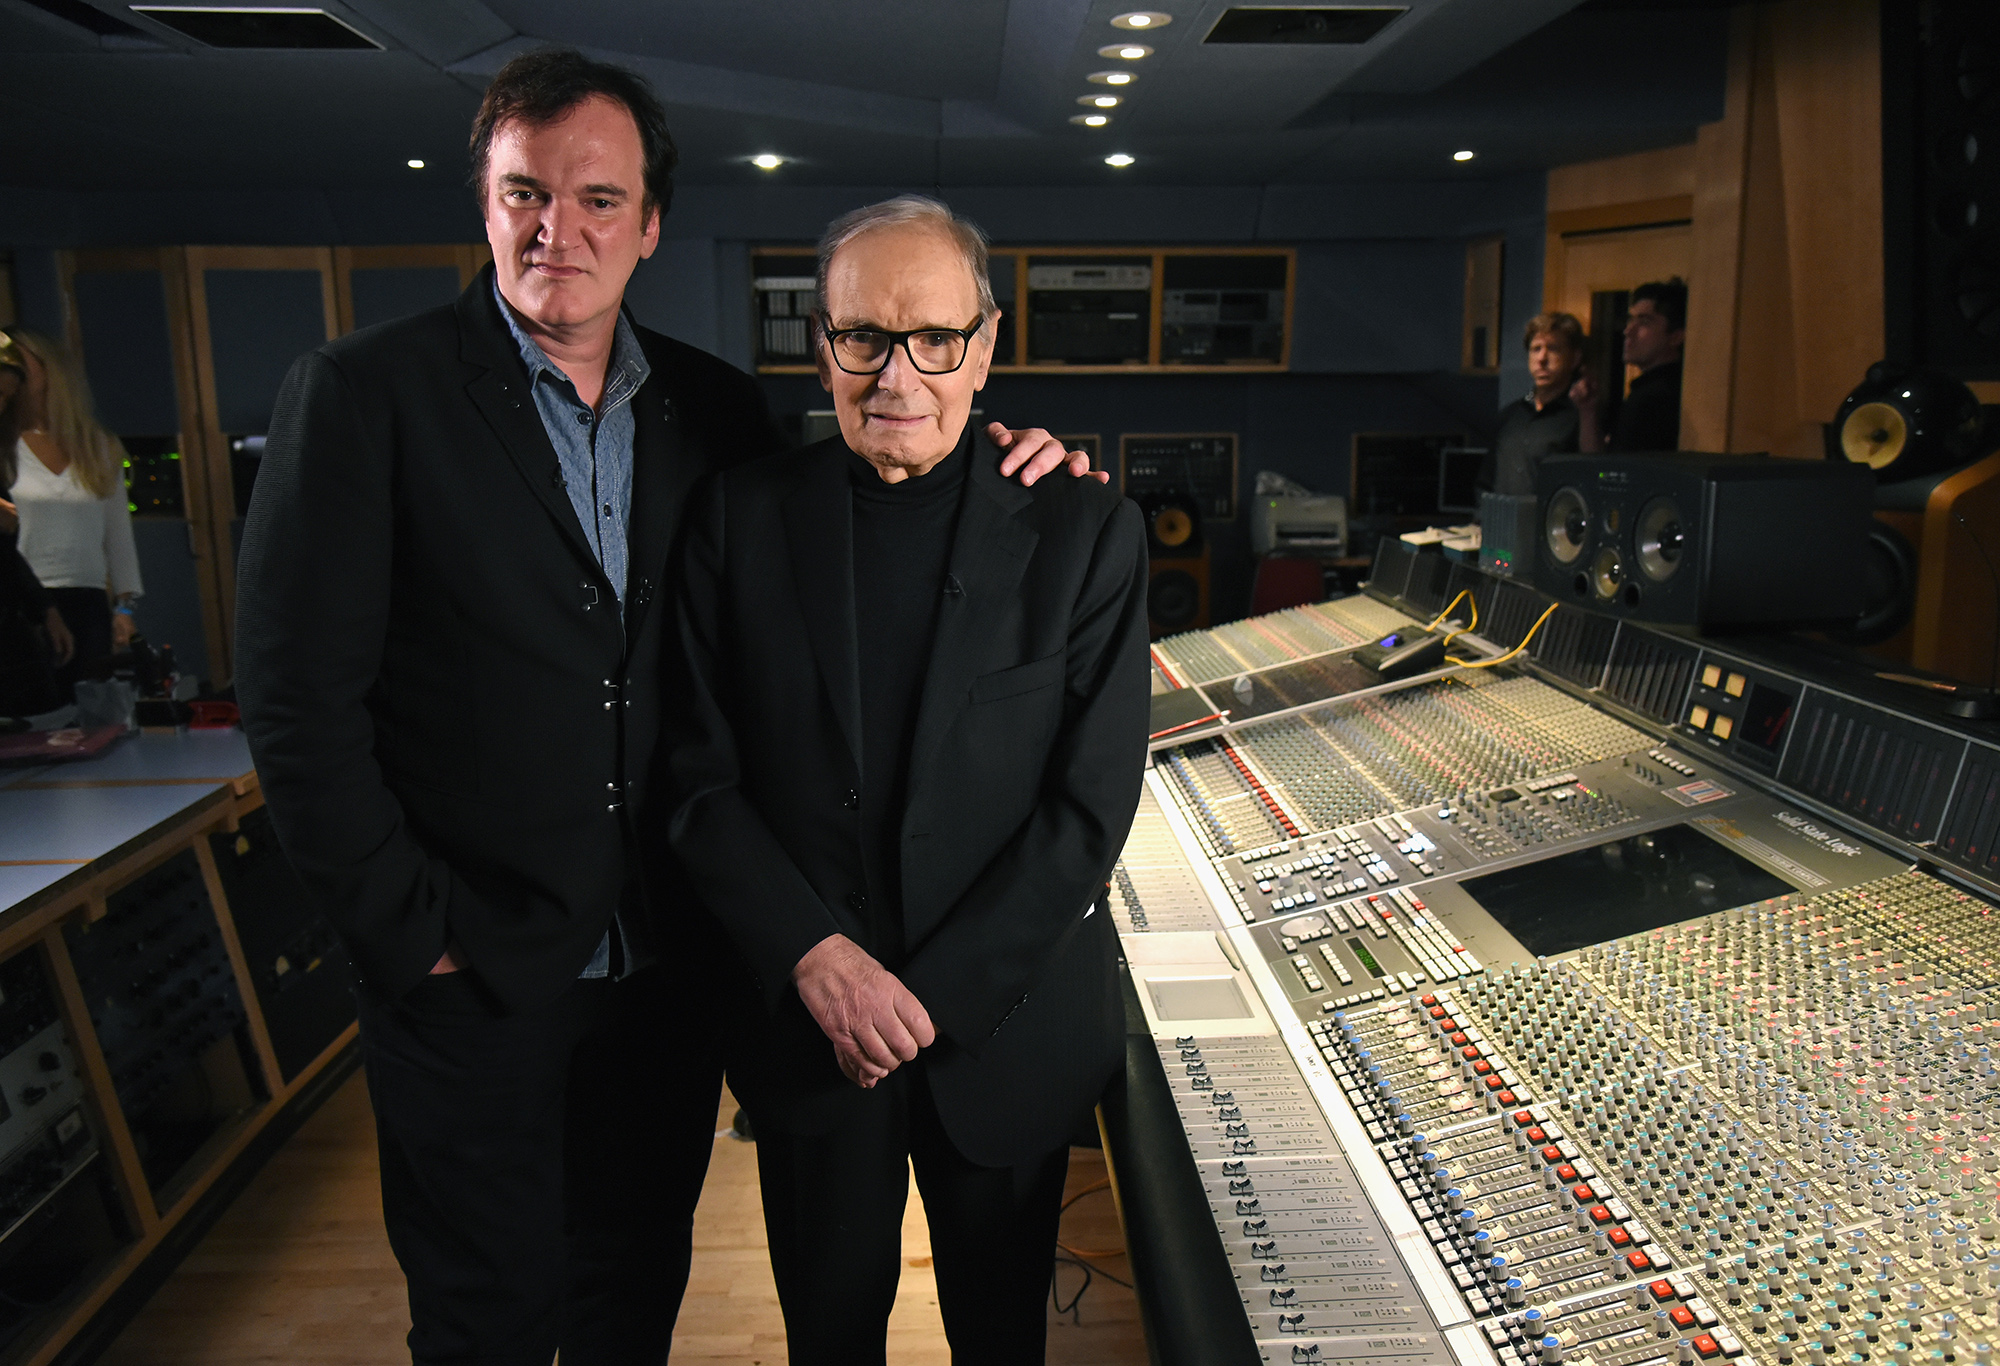 LONDON, ENGLAND - DECEMBER 09: Quentin Tarantino and Ennio Morricone pictured inside the control room at Abbey Road Studios ahead of the Live to Lathe Limited Edition Recording of the H8ful Eight Soundtrack on December 9, 2015 in London, England. КРЕДИТ Kevin Mazur/Getty Images for Universal Musi